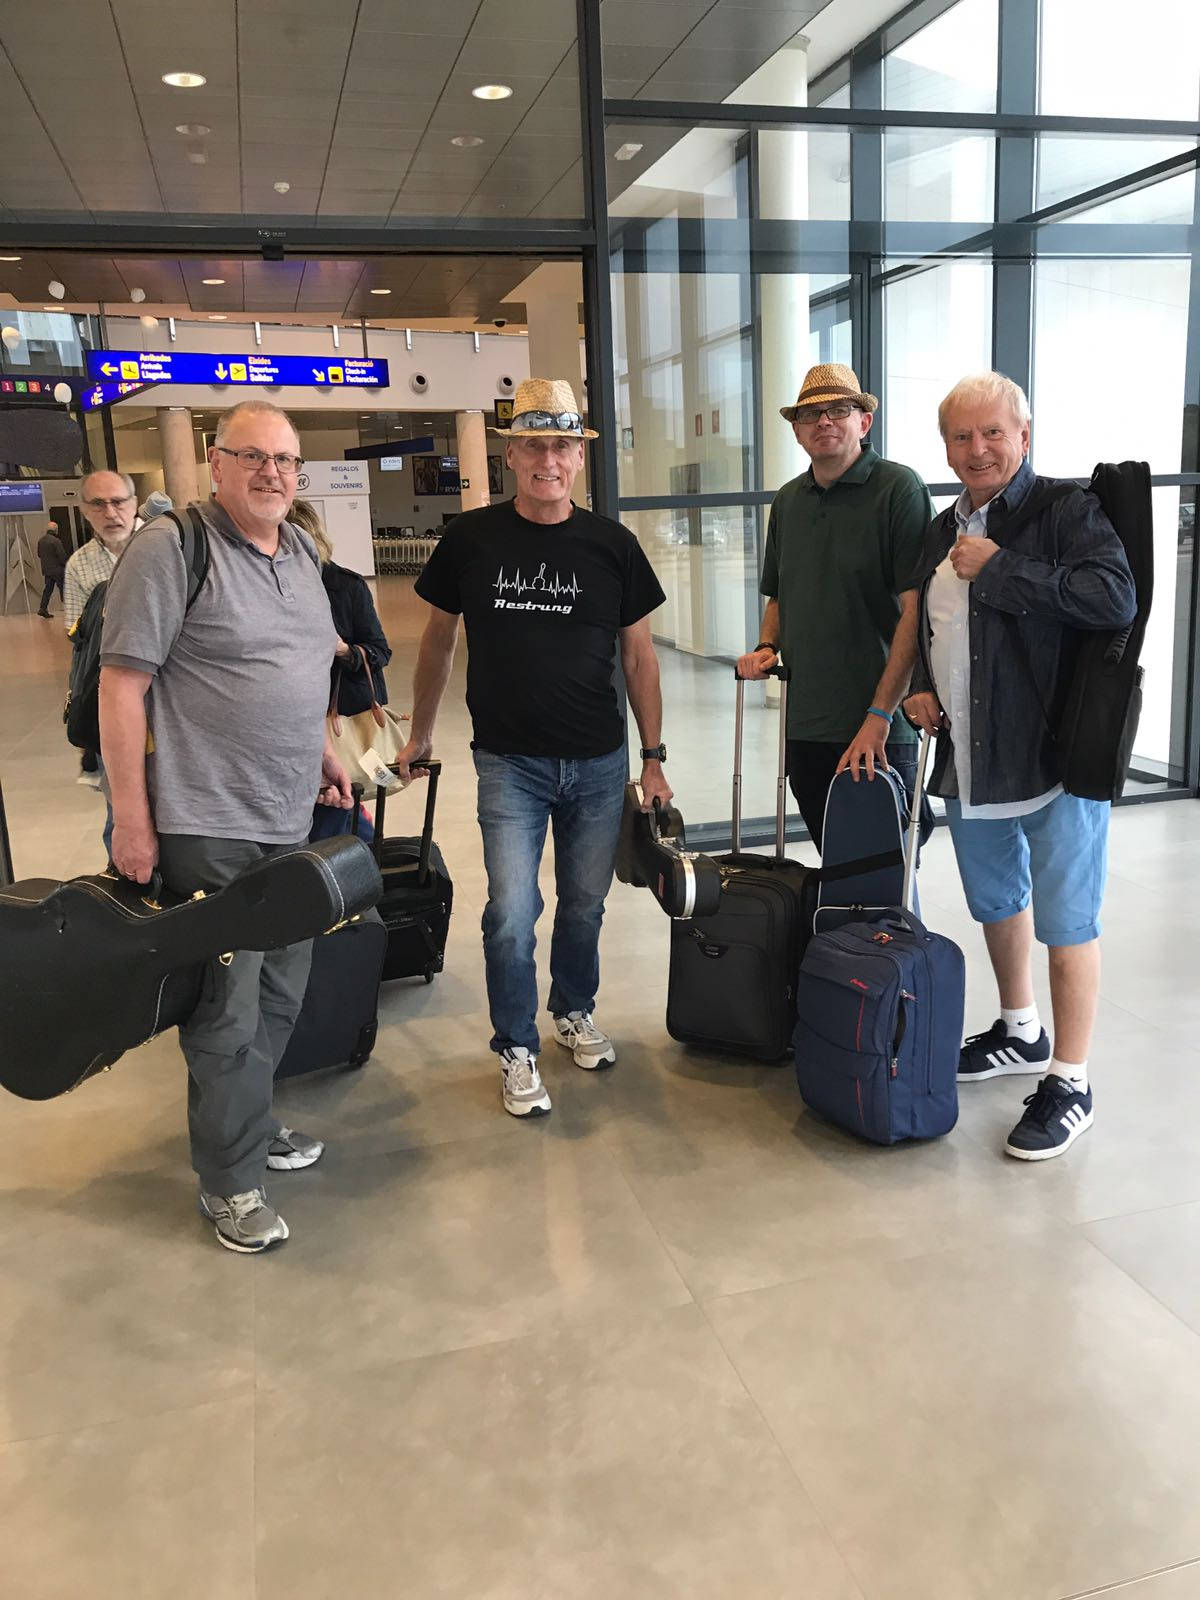 Arriving for the gigs in Spain